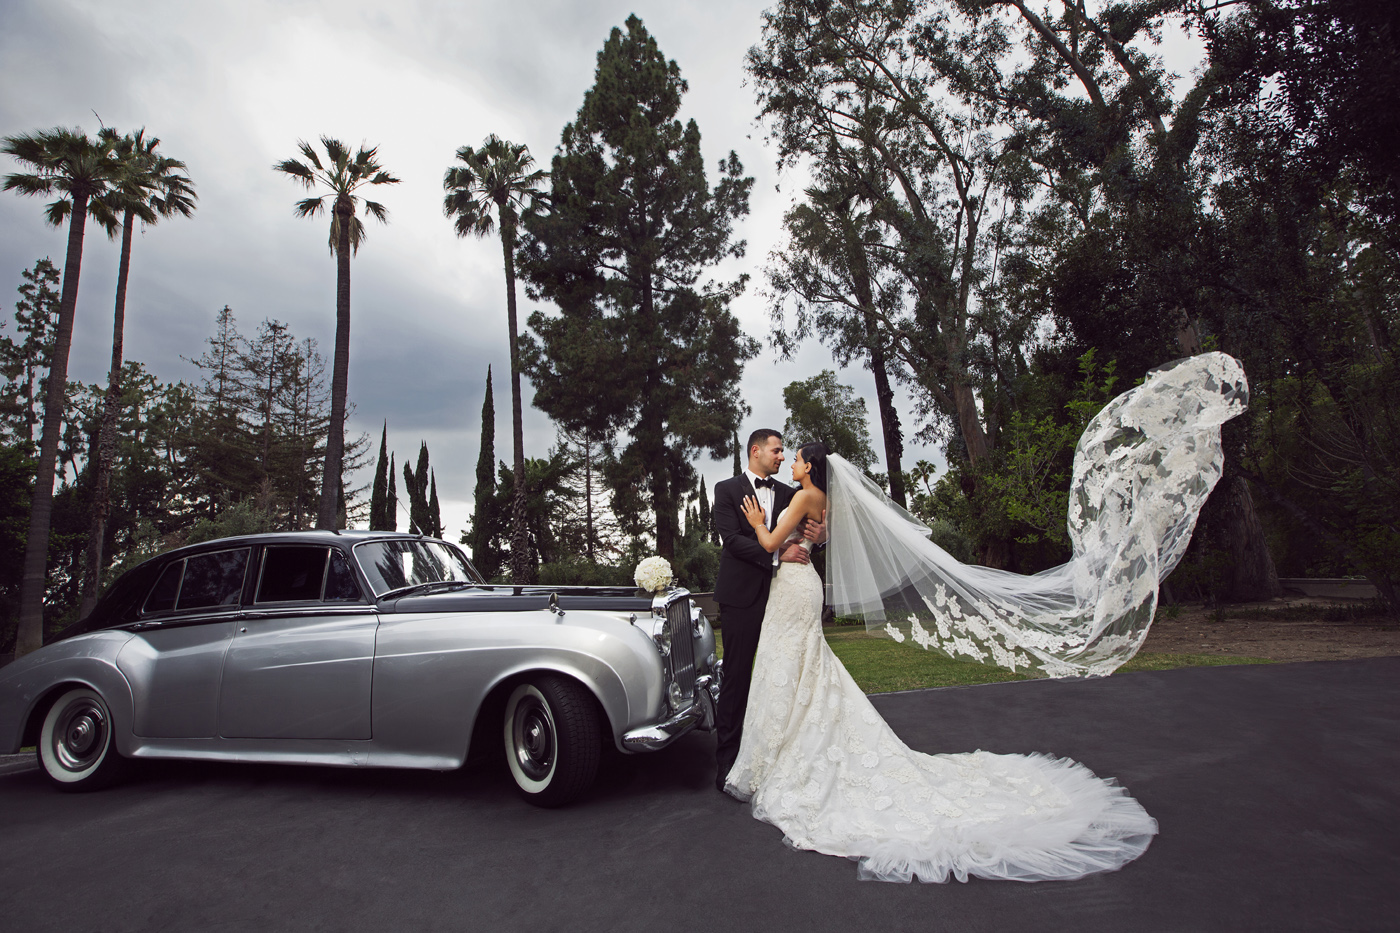 089DukePhotography_DukeImages_weddings_losangeles.jpg